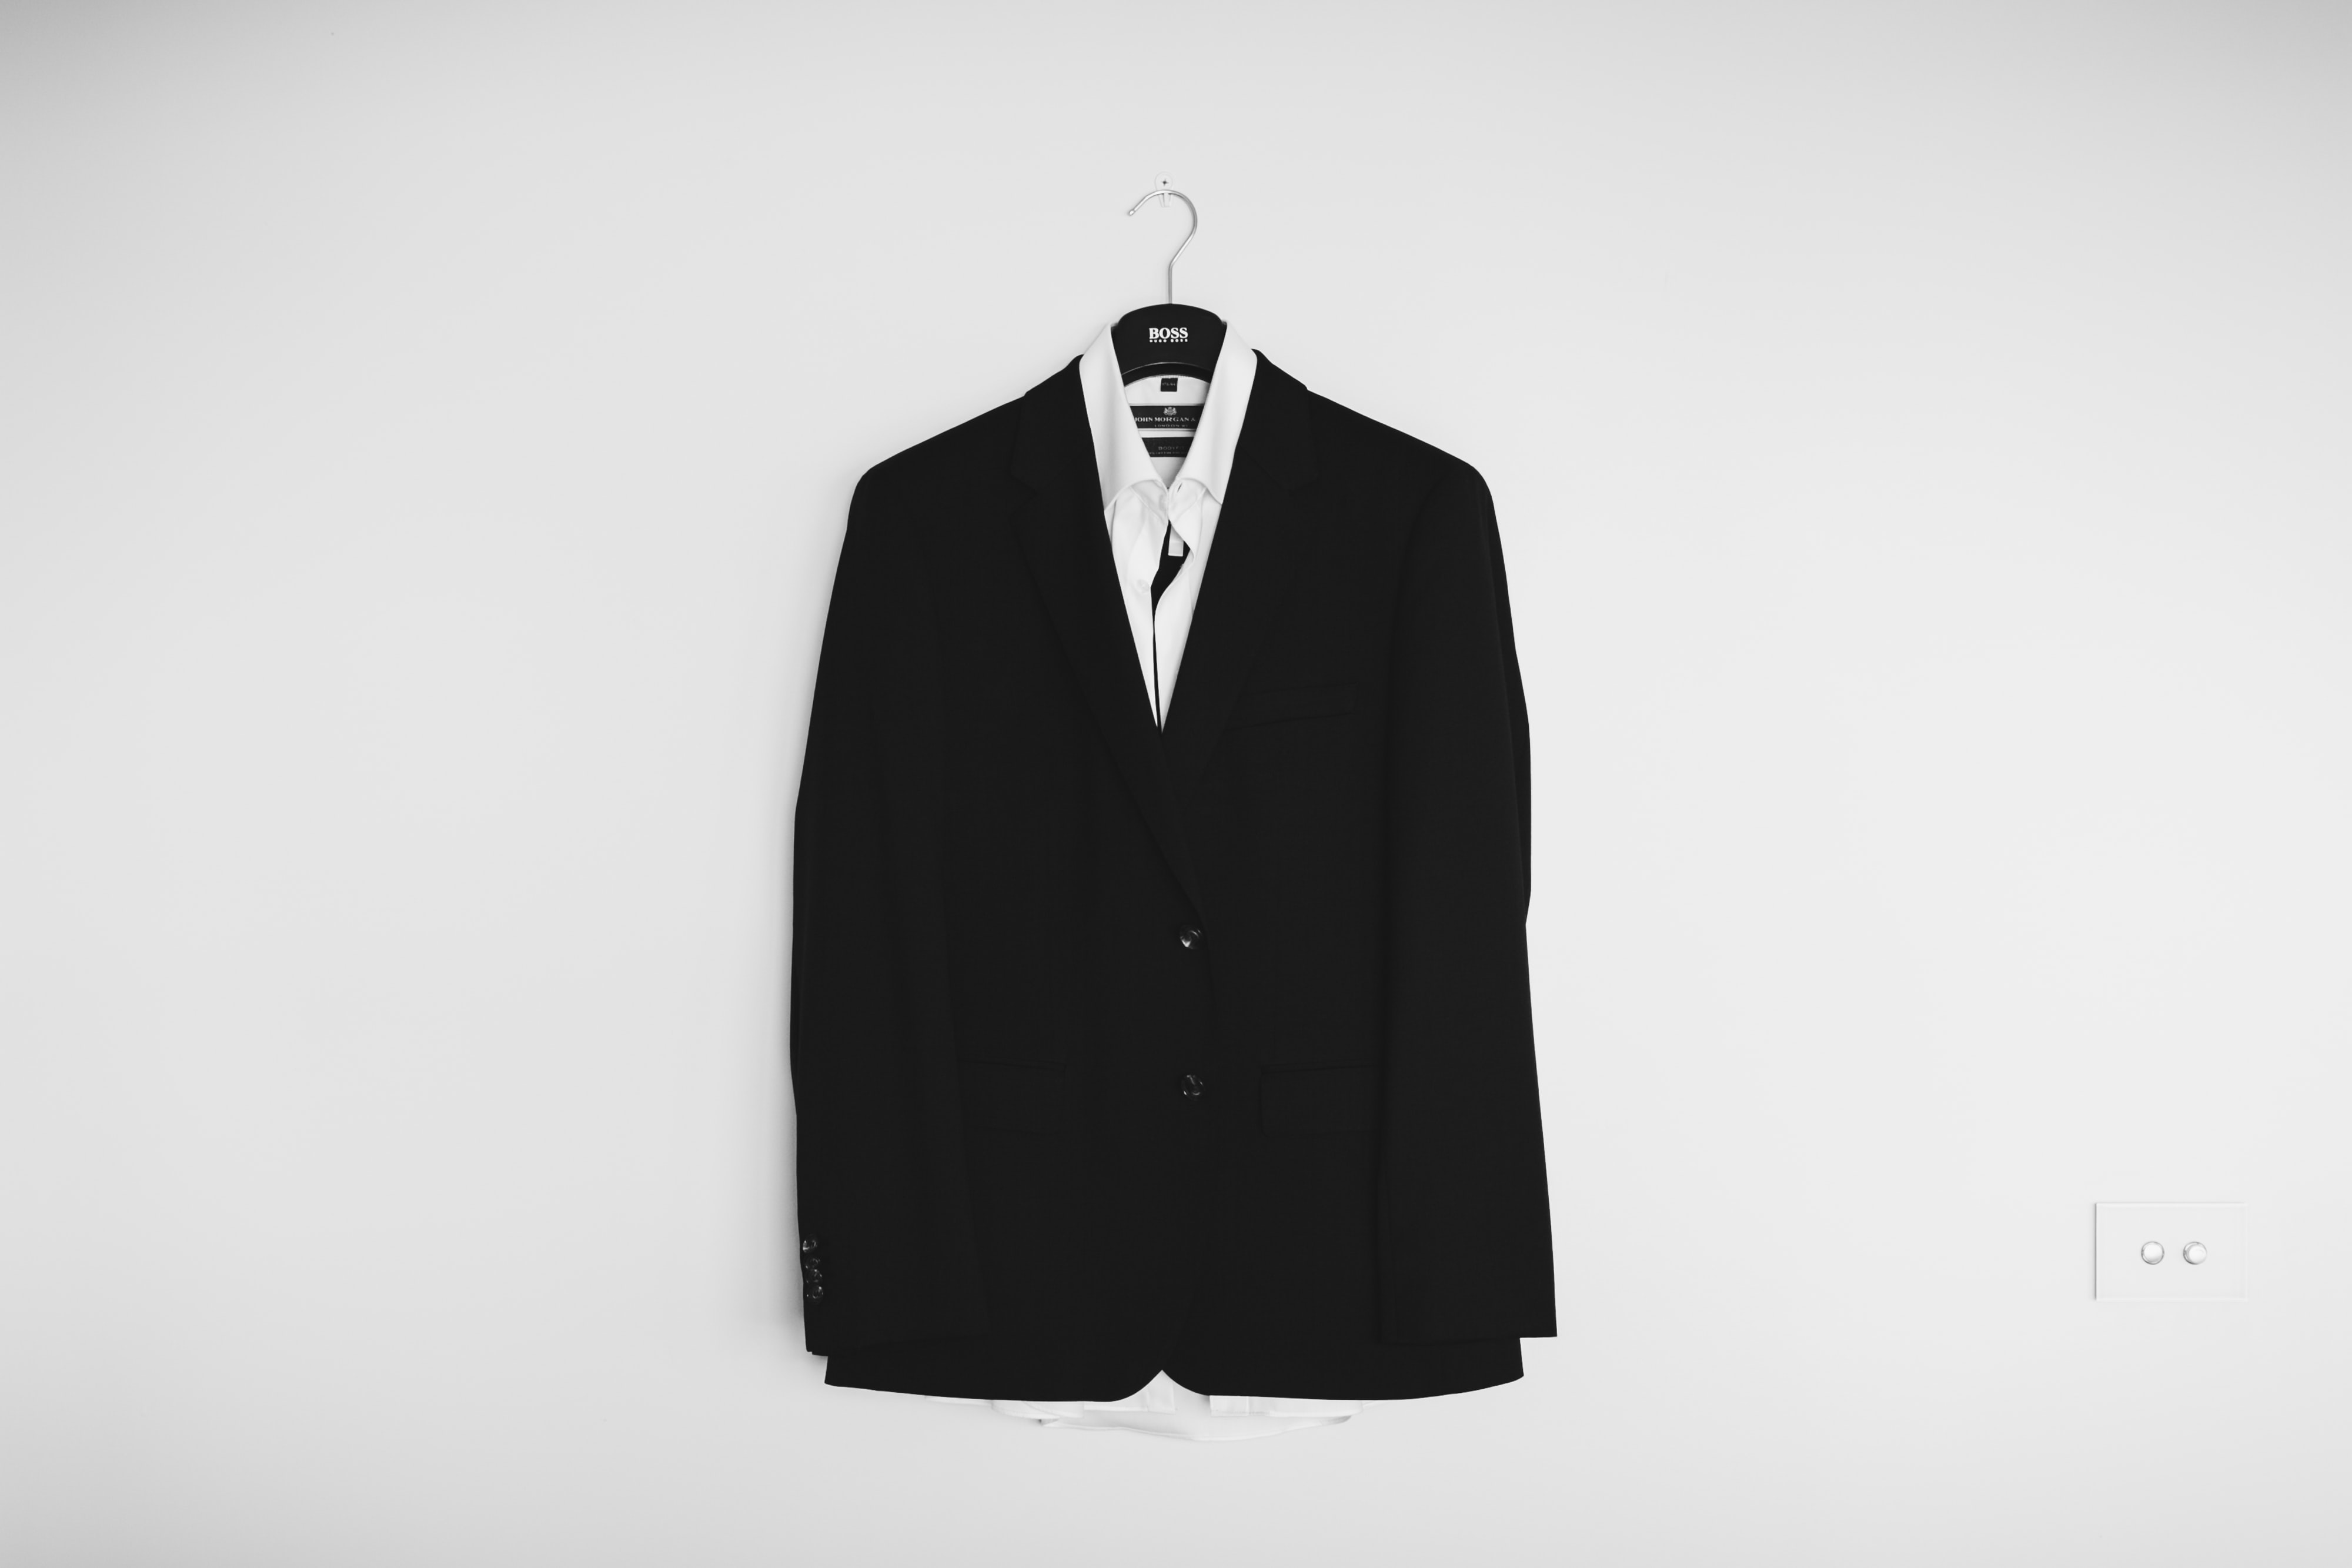 black suit jacket hanged on wall